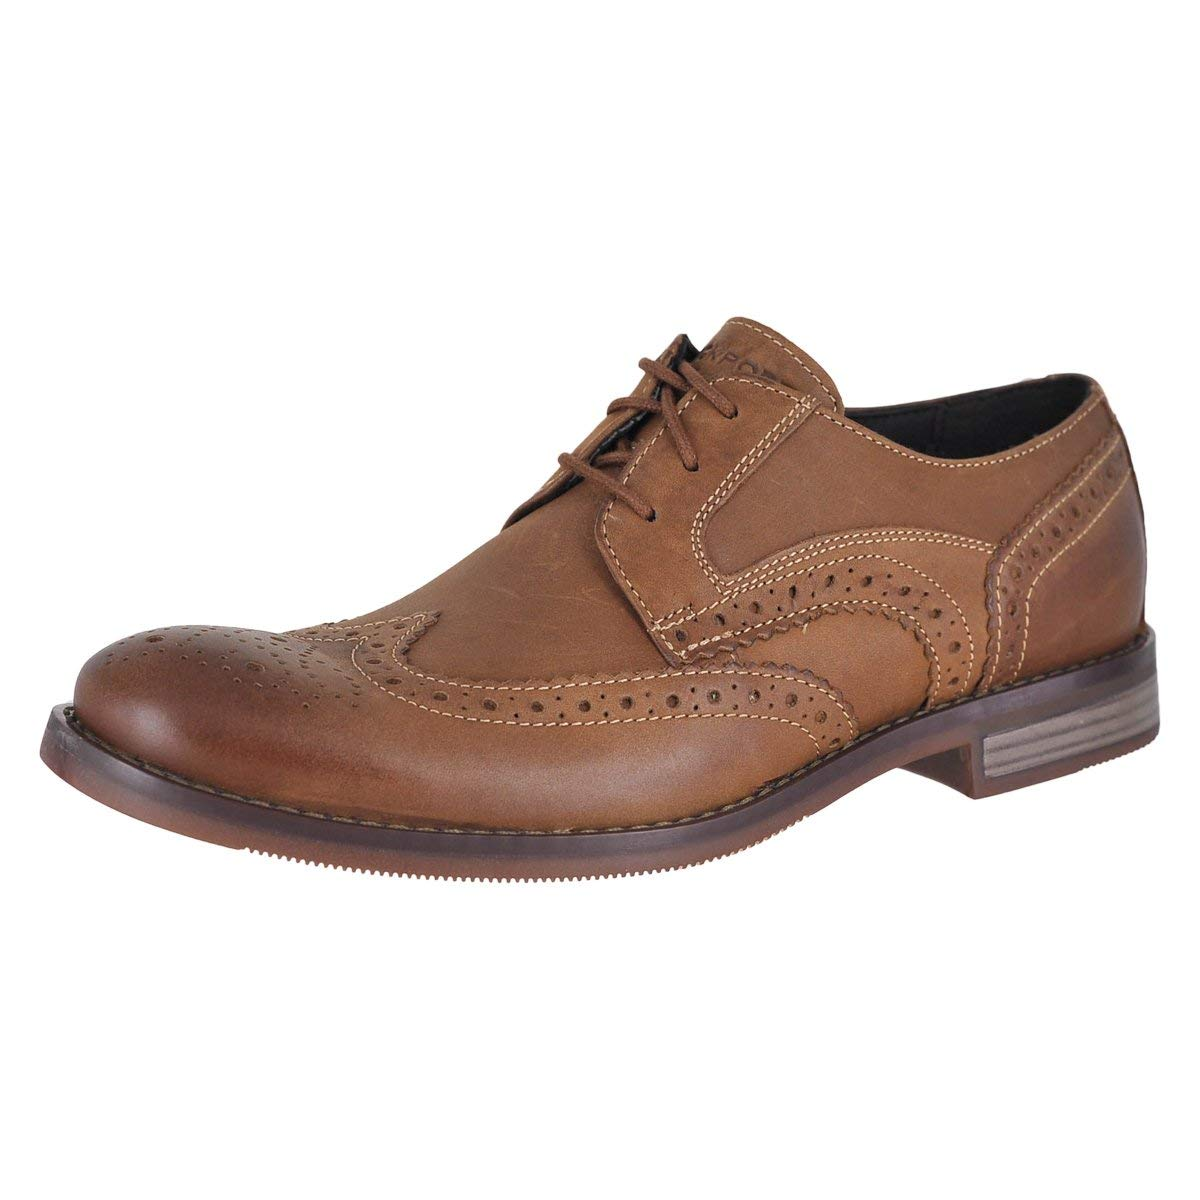 3e682a624f4b7 Cheap Rockport Wingtip Shoes, find Rockport Wingtip Shoes deals on ...